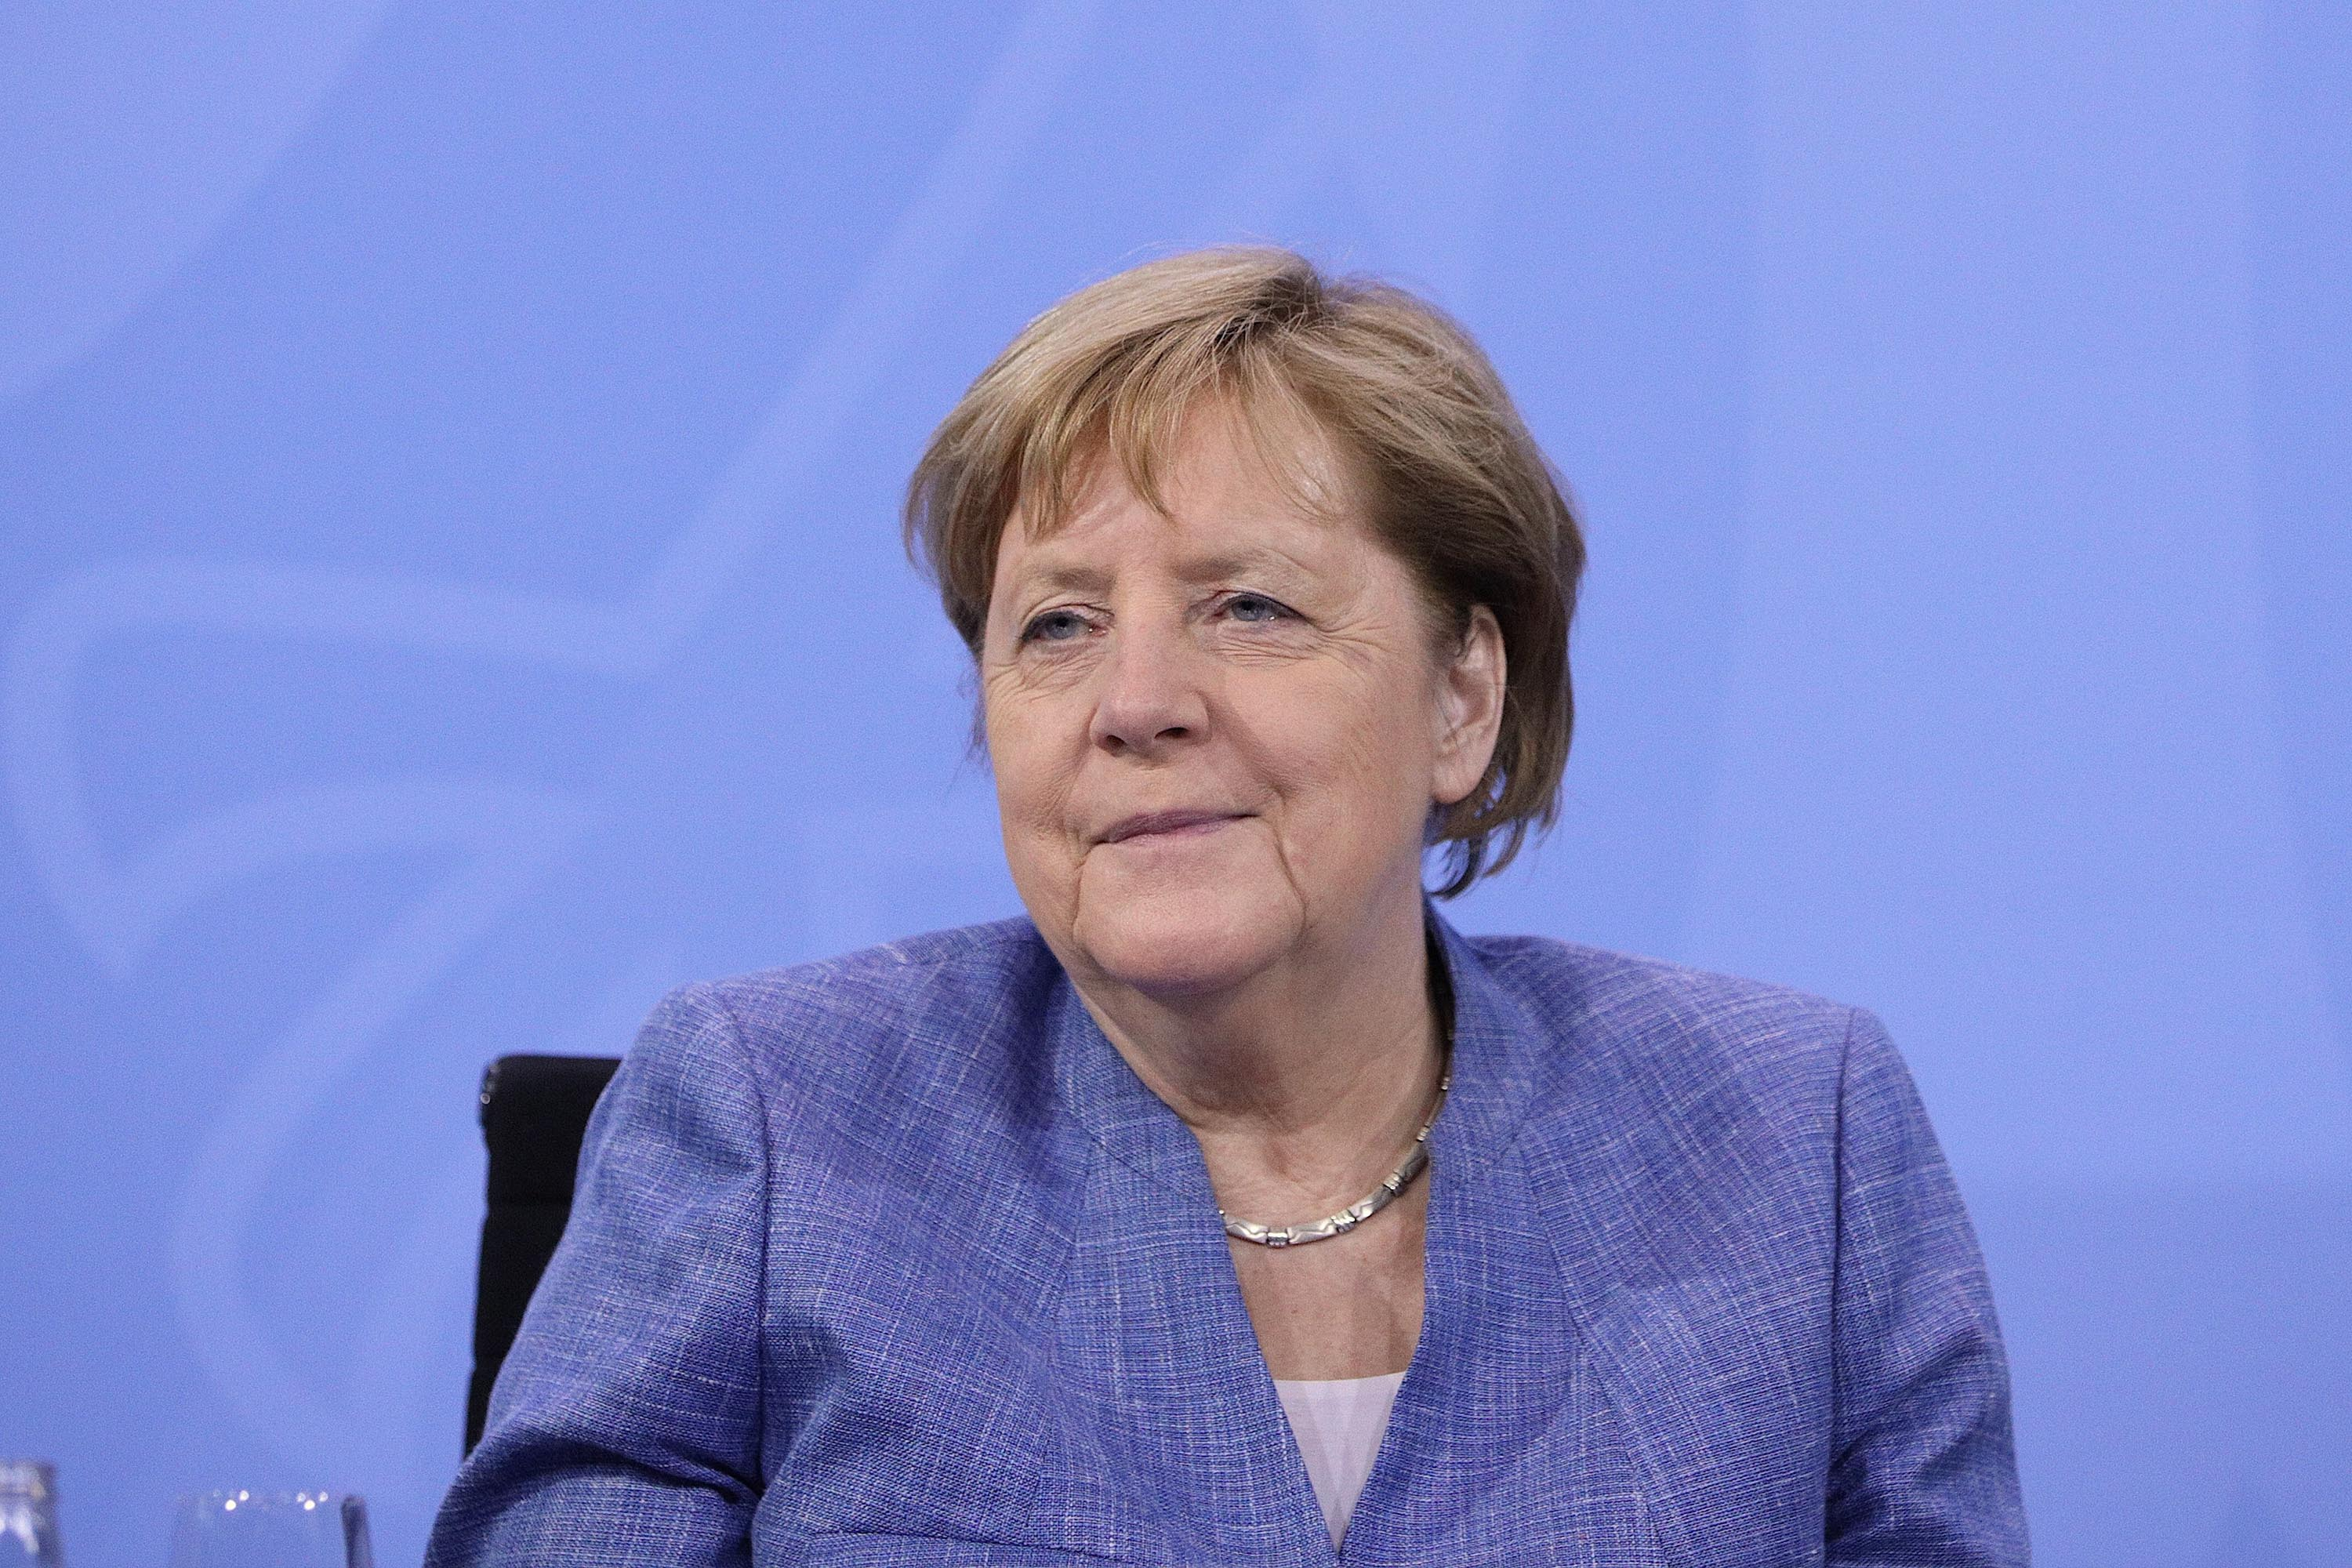 German Chancellor Angela Merkel is pictured during a press conference on June 10, in Berlin, Germany.